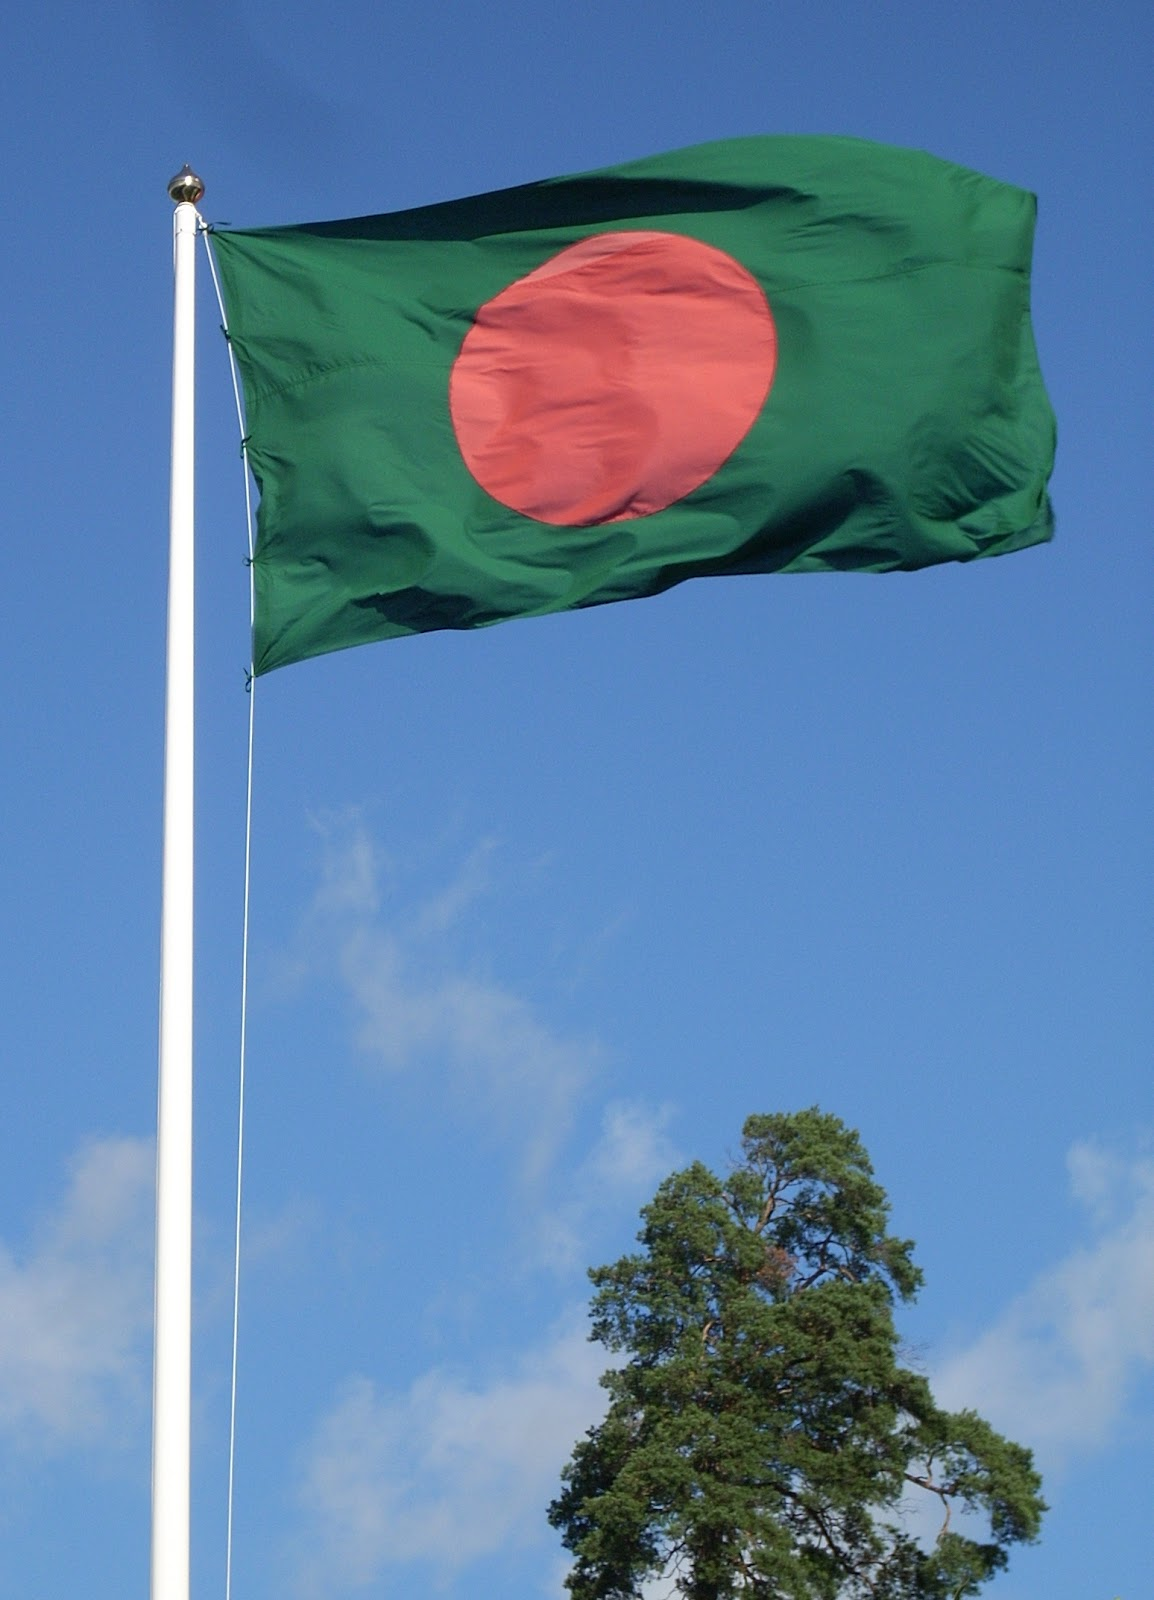 http://4.bp.blogspot.com/-VWb4UH7G9rU/T_tFPl7CFLI/AAAAAAAAAEc/jjZ6bbCgShI/s1600/Flag_of_Bangladesh_and_tree.jpg